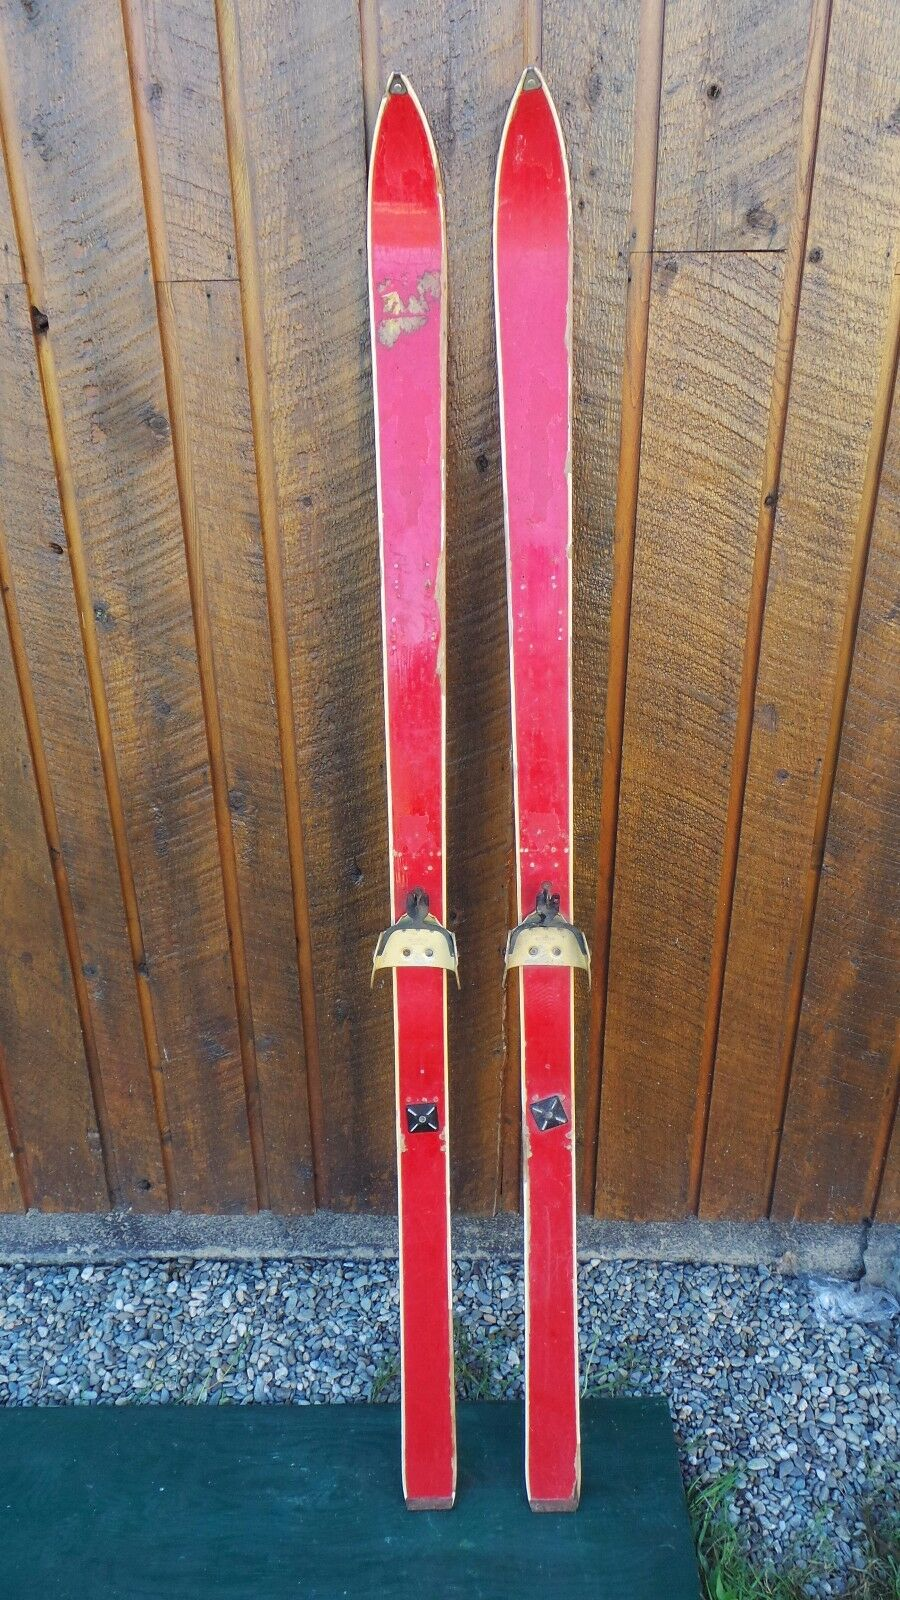 Vintage Wooden 66  Long  Skis with Bindings Wiht Old Original Red Finish  no minimum